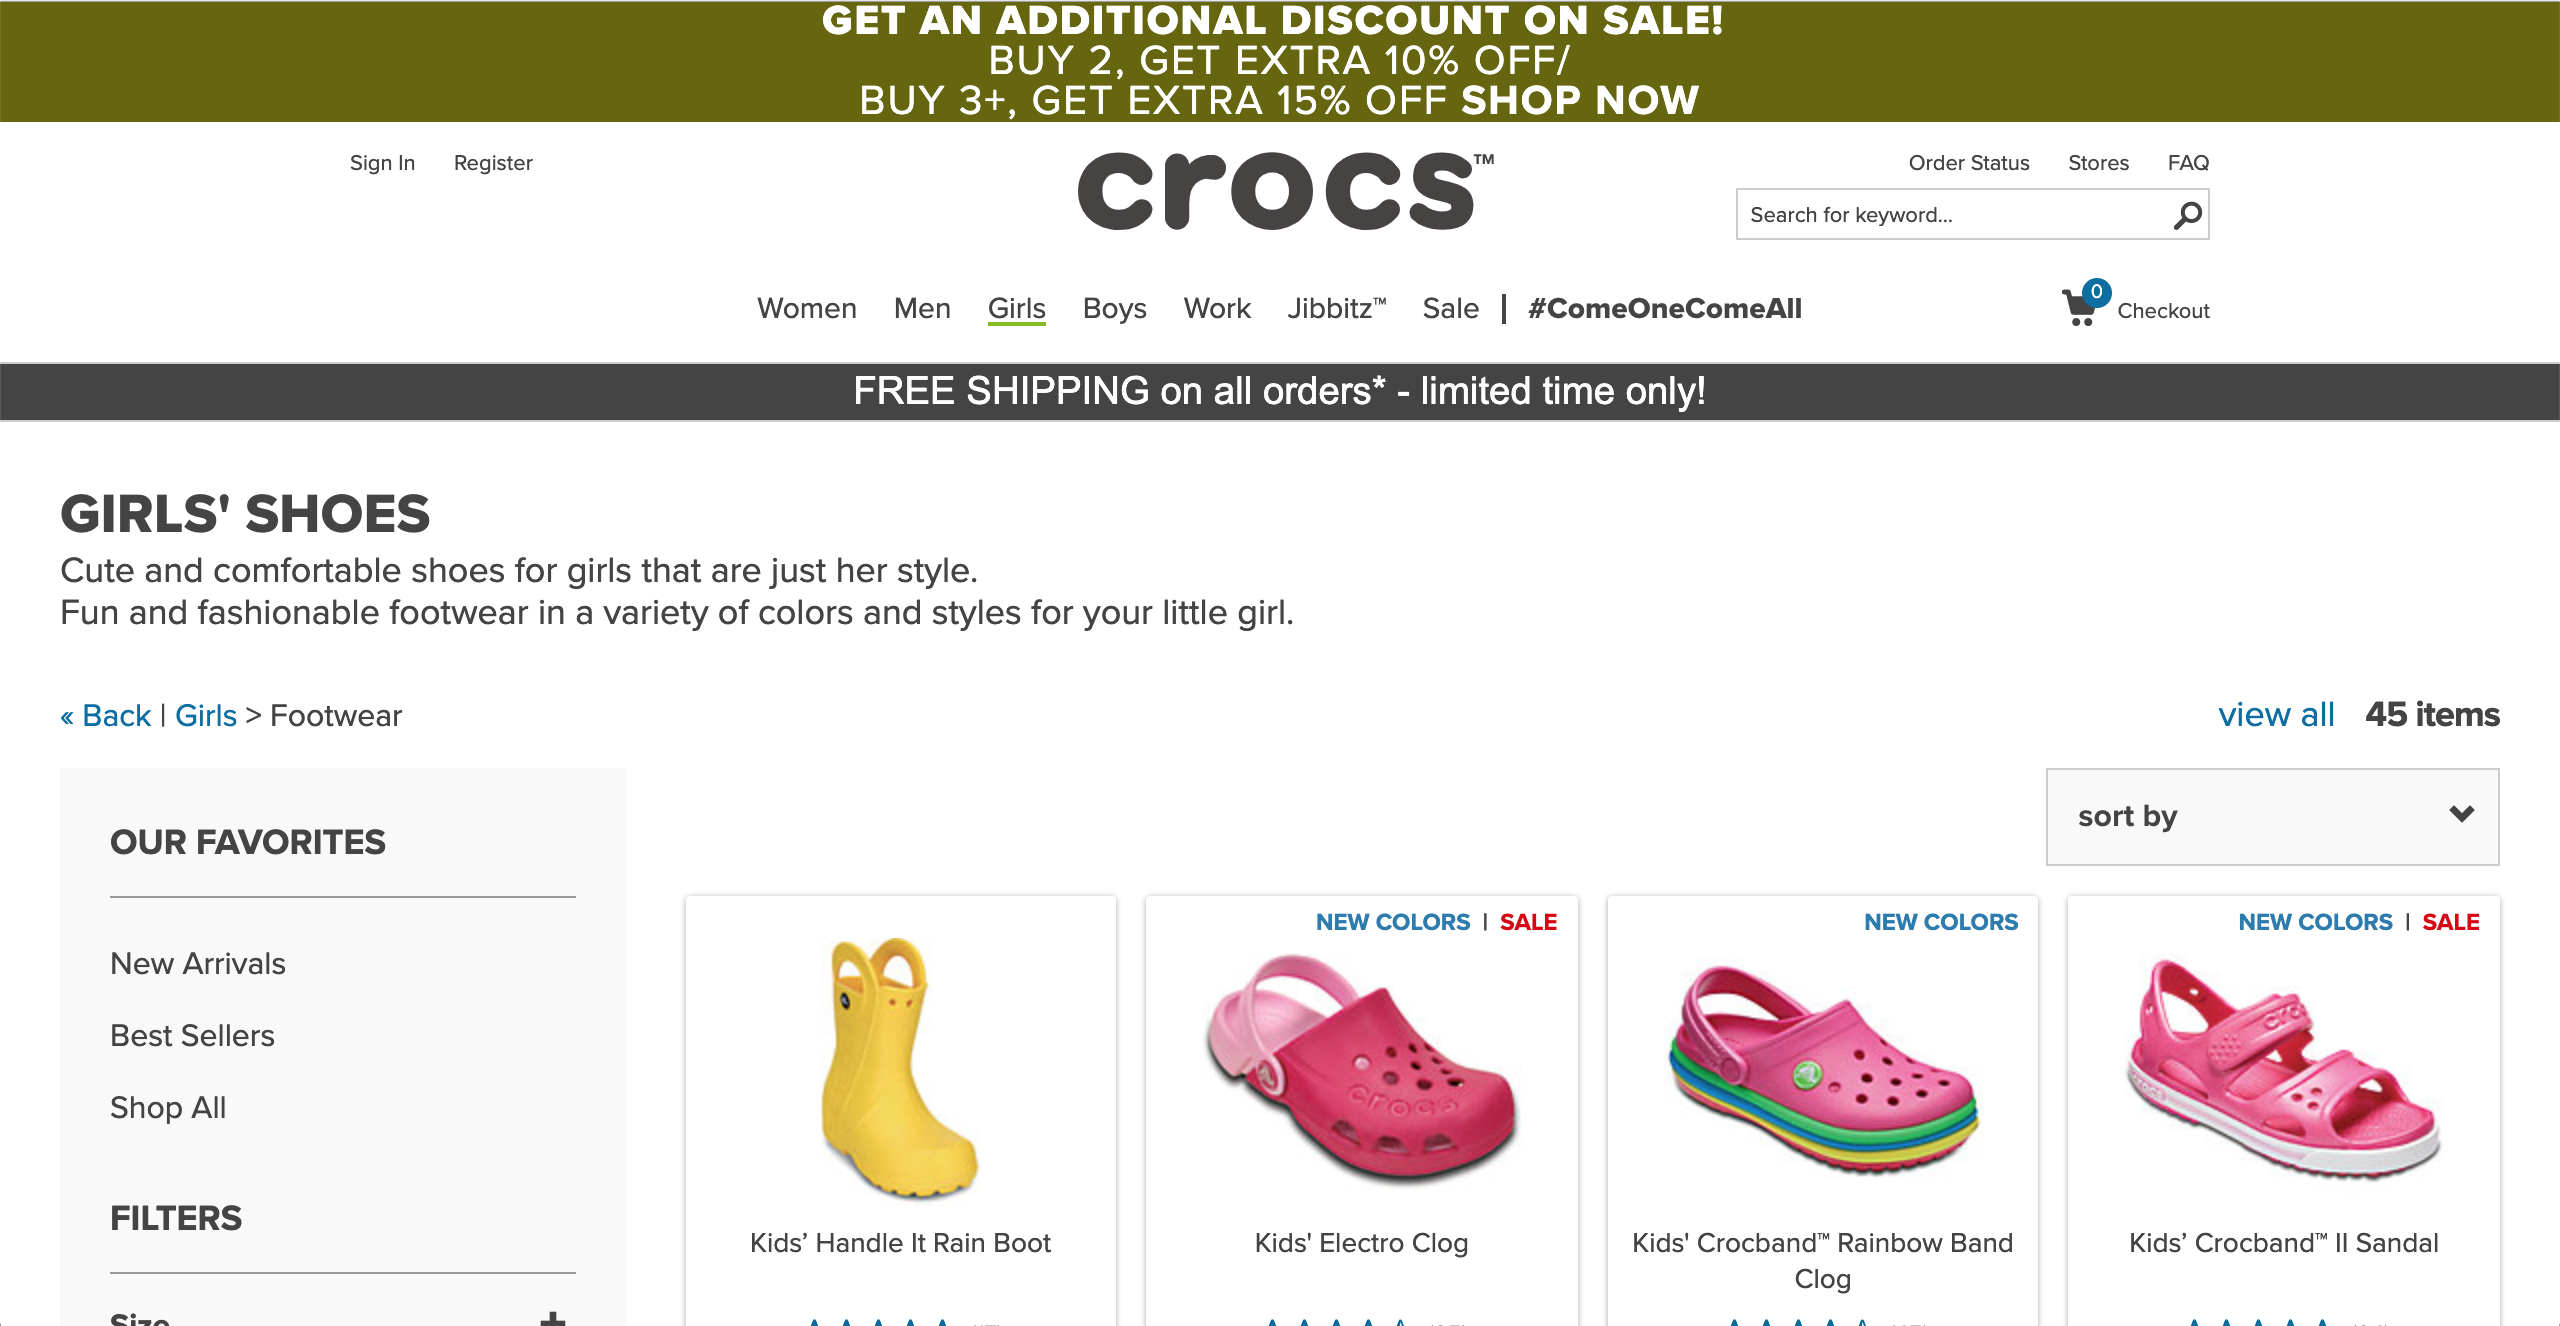 Crocs Girl's products page